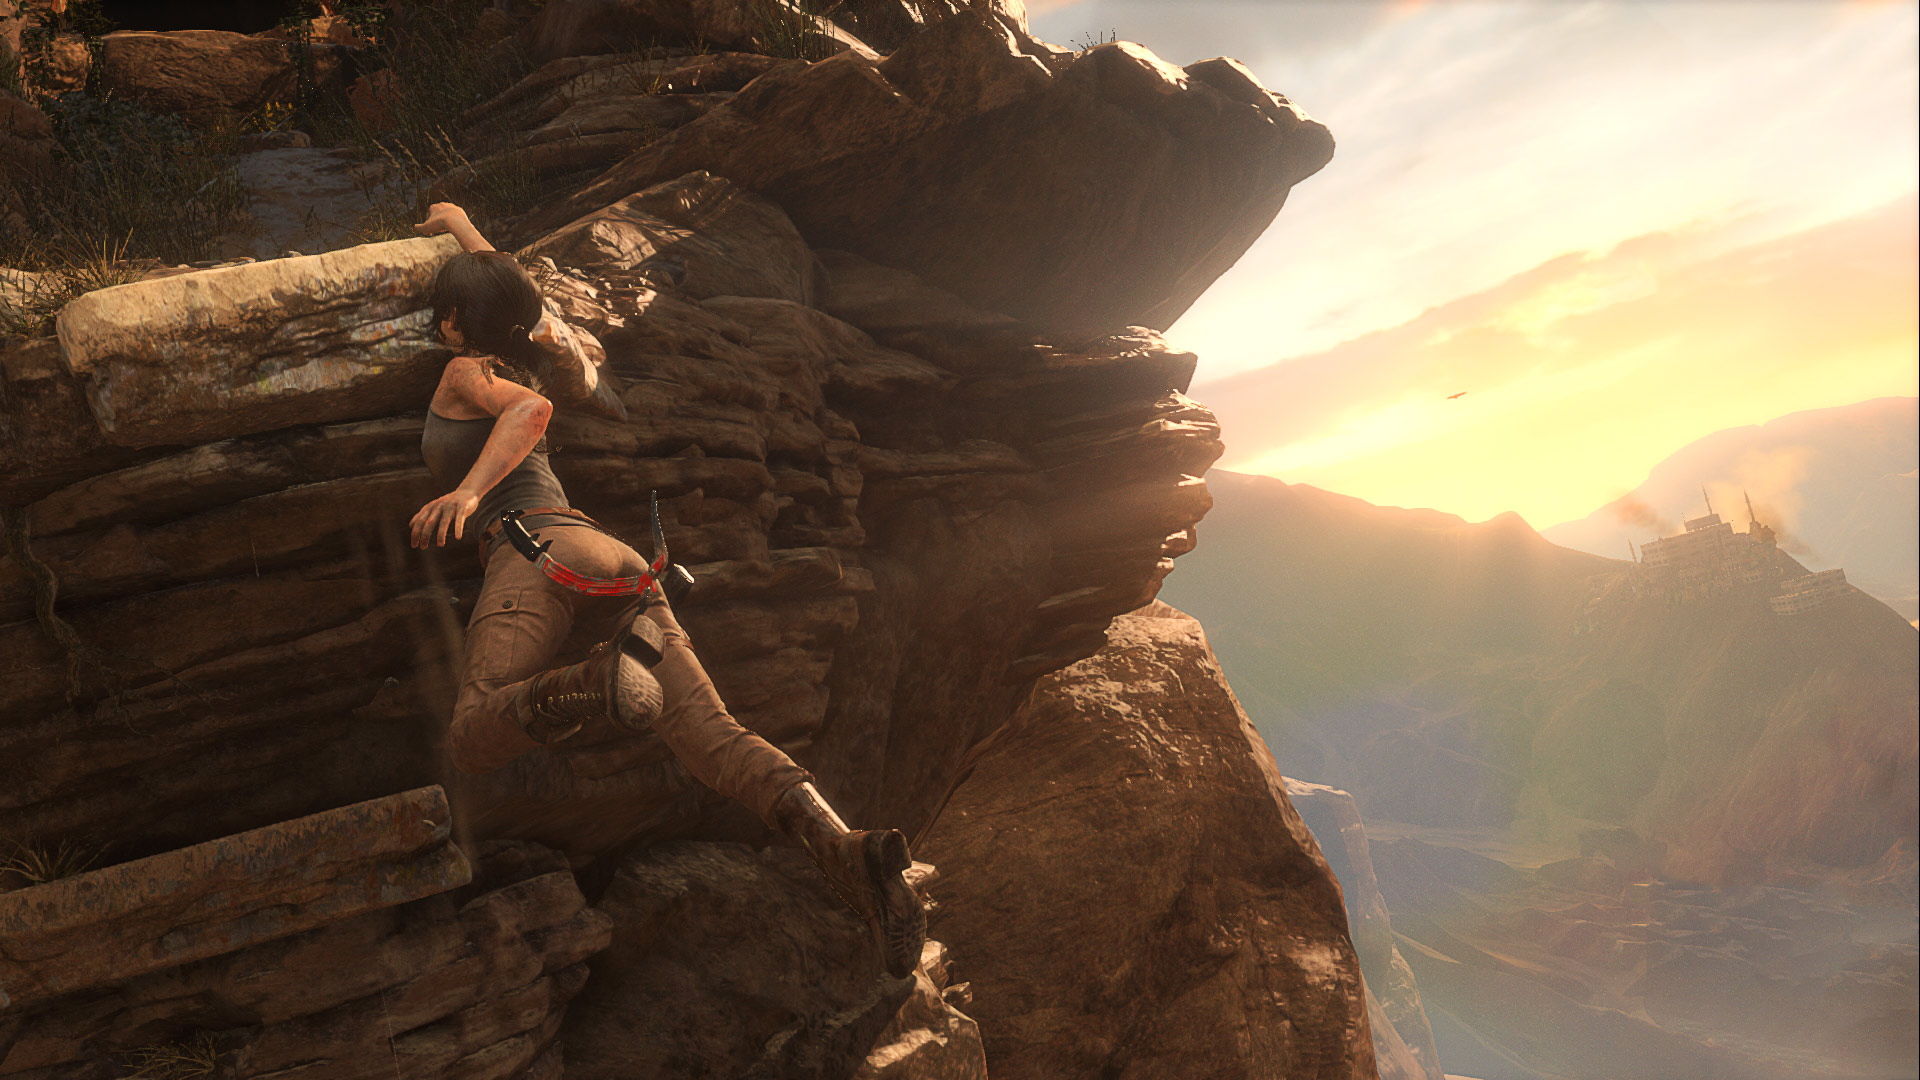 Rise of the Tomb Raider image 3